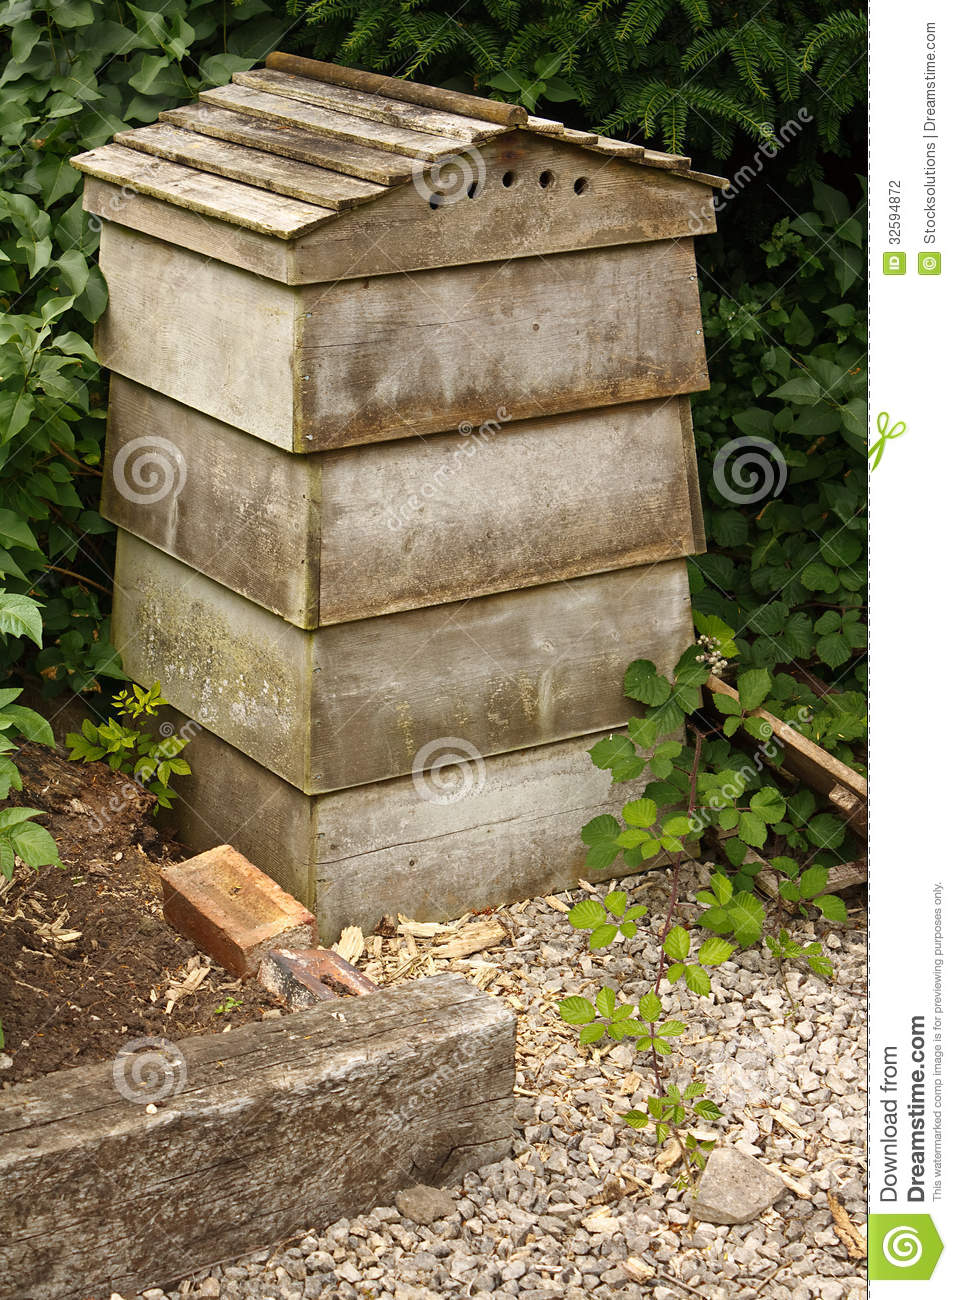 Traditional Stacking Beehive Stock Photo Image 32594872